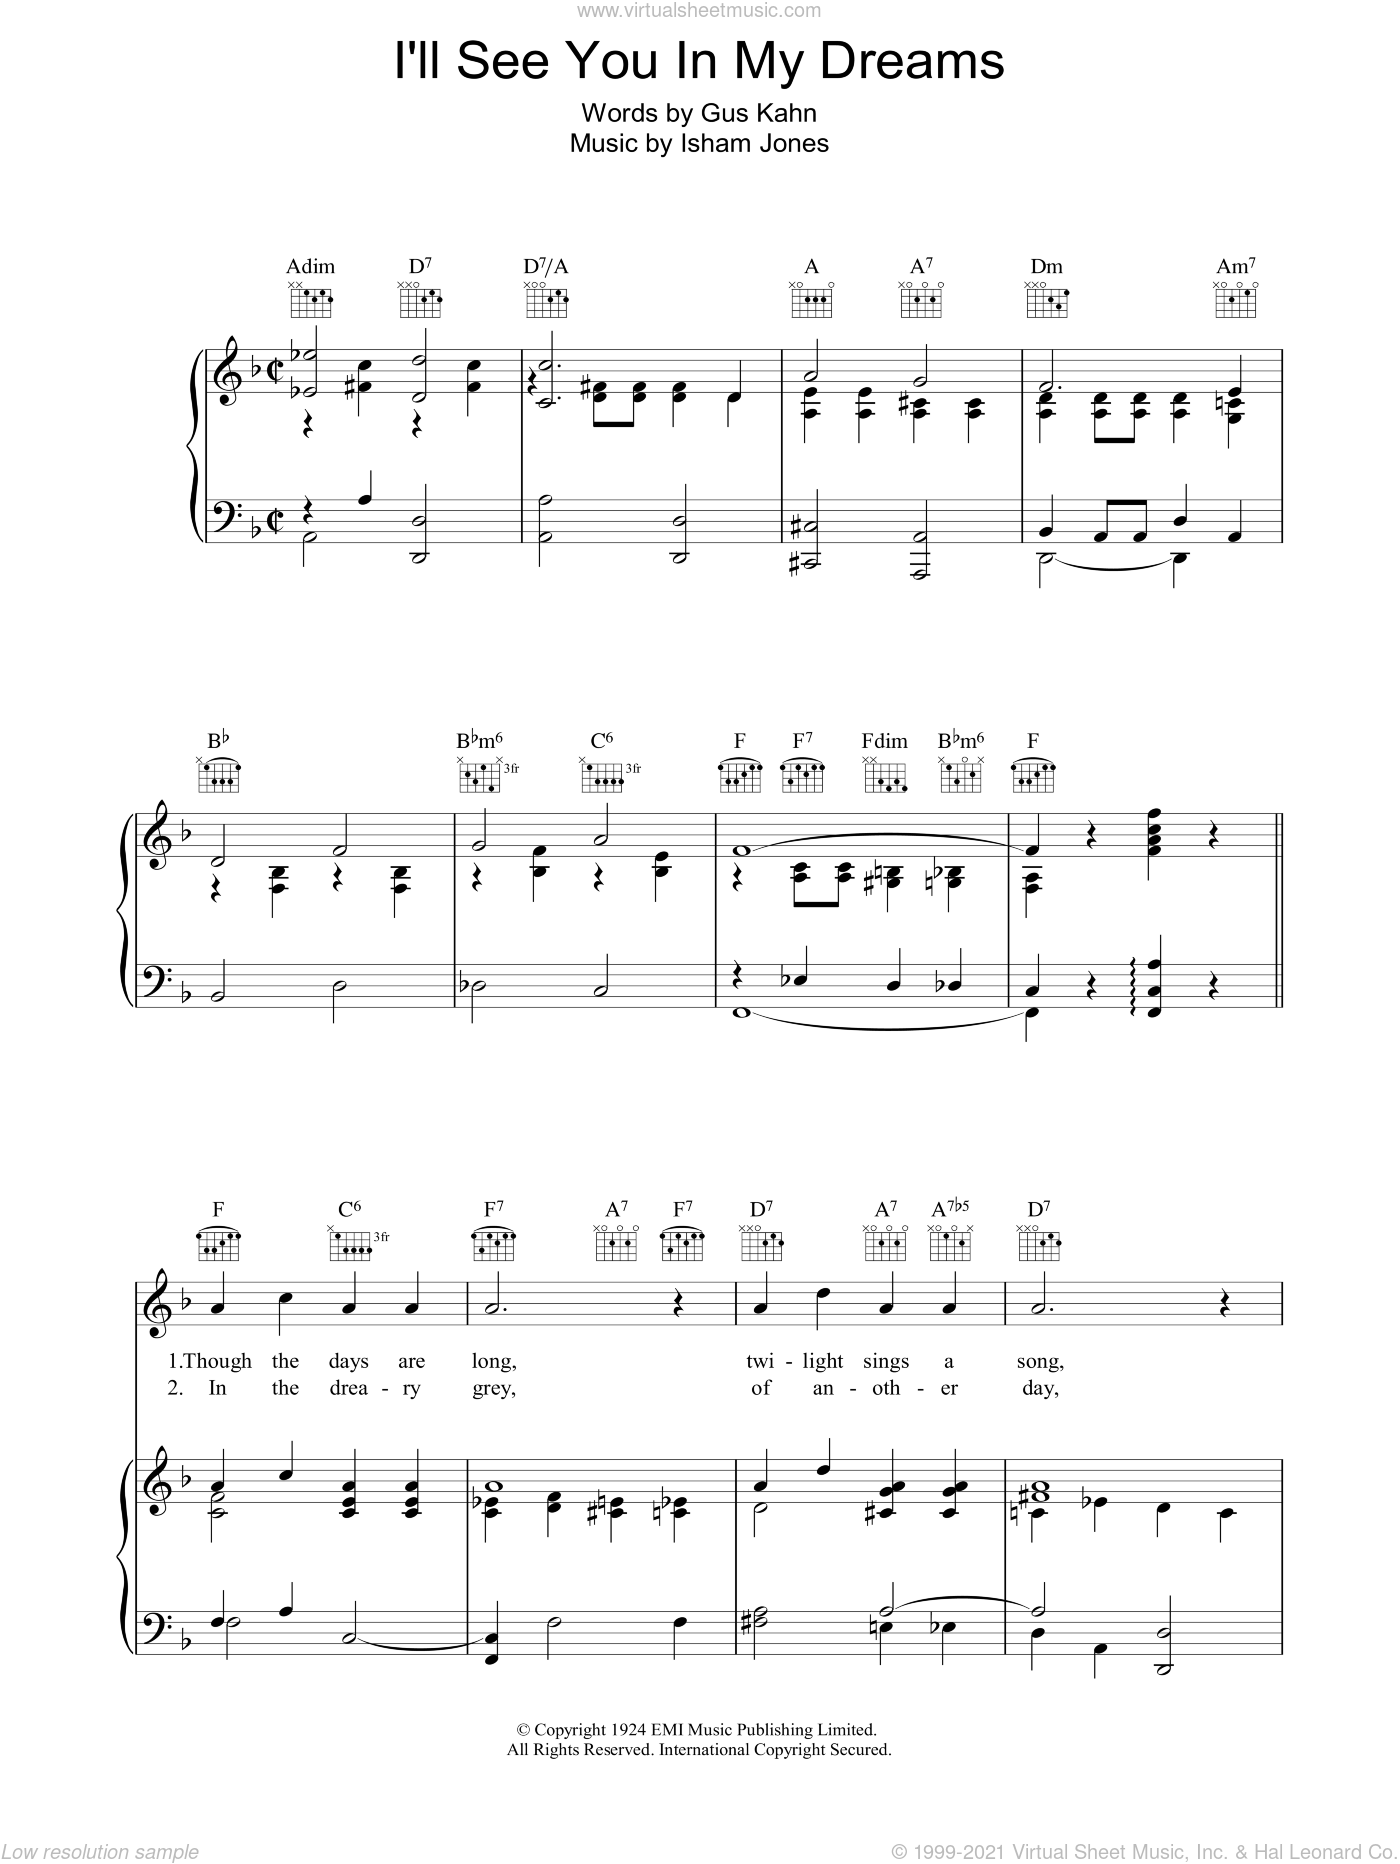 I'll See You In My Dreams sheet music for voice, piano or guitar by Isham Jones